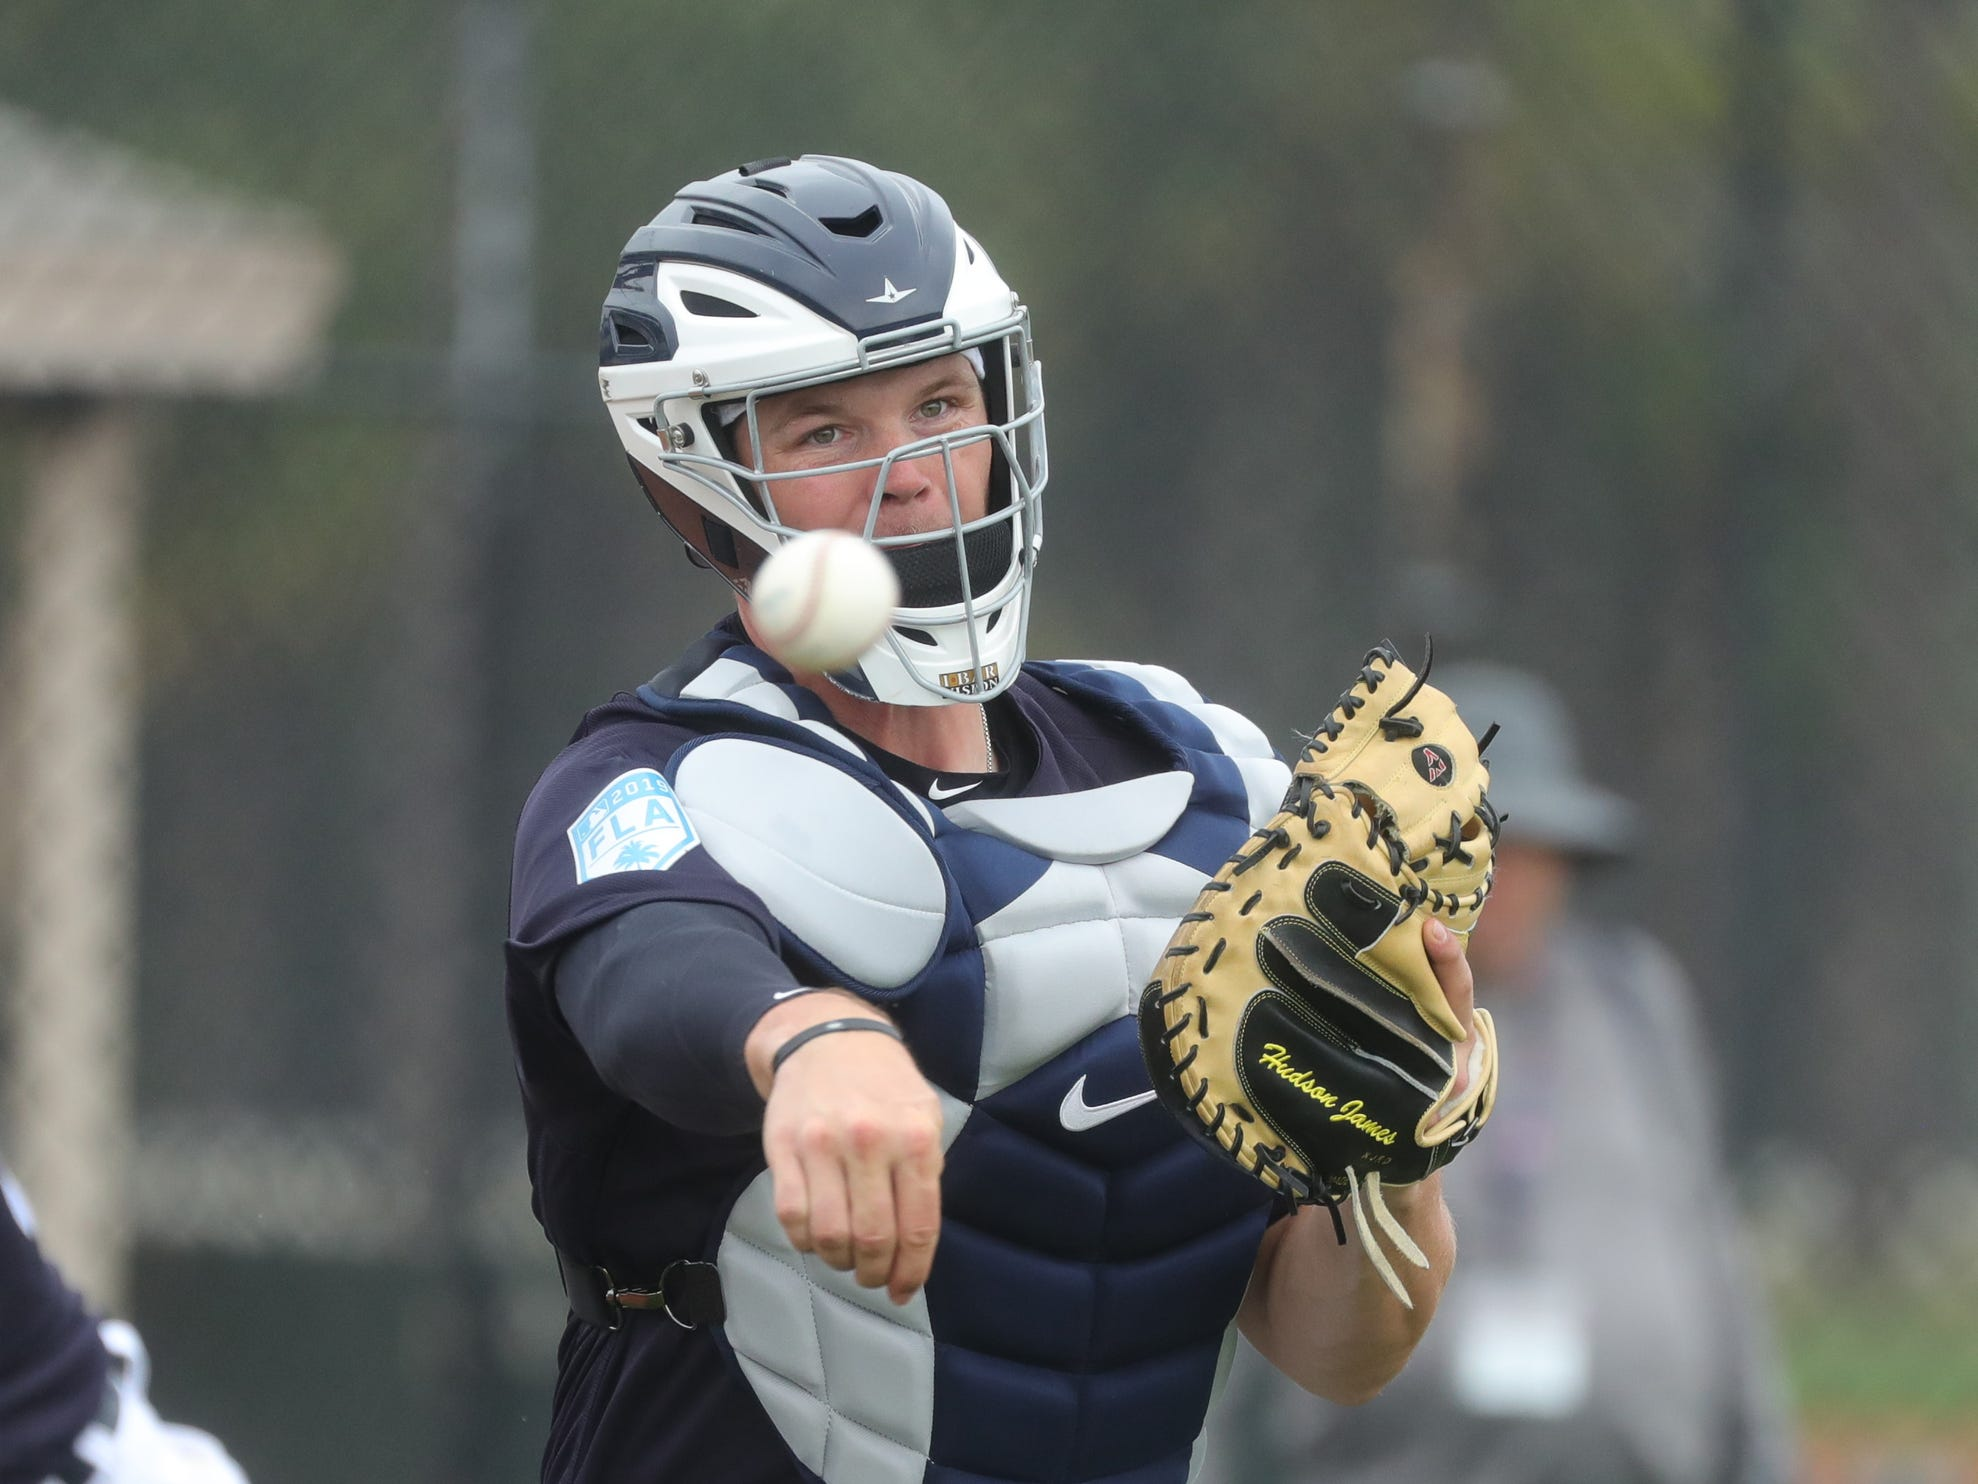 Detroit Tigers catcher Grayson Greiner throws to first base during practice Monday, Feb. 18, 2019 at Publix Field at Joker Marchant Stadium in Lakeland, Fla.